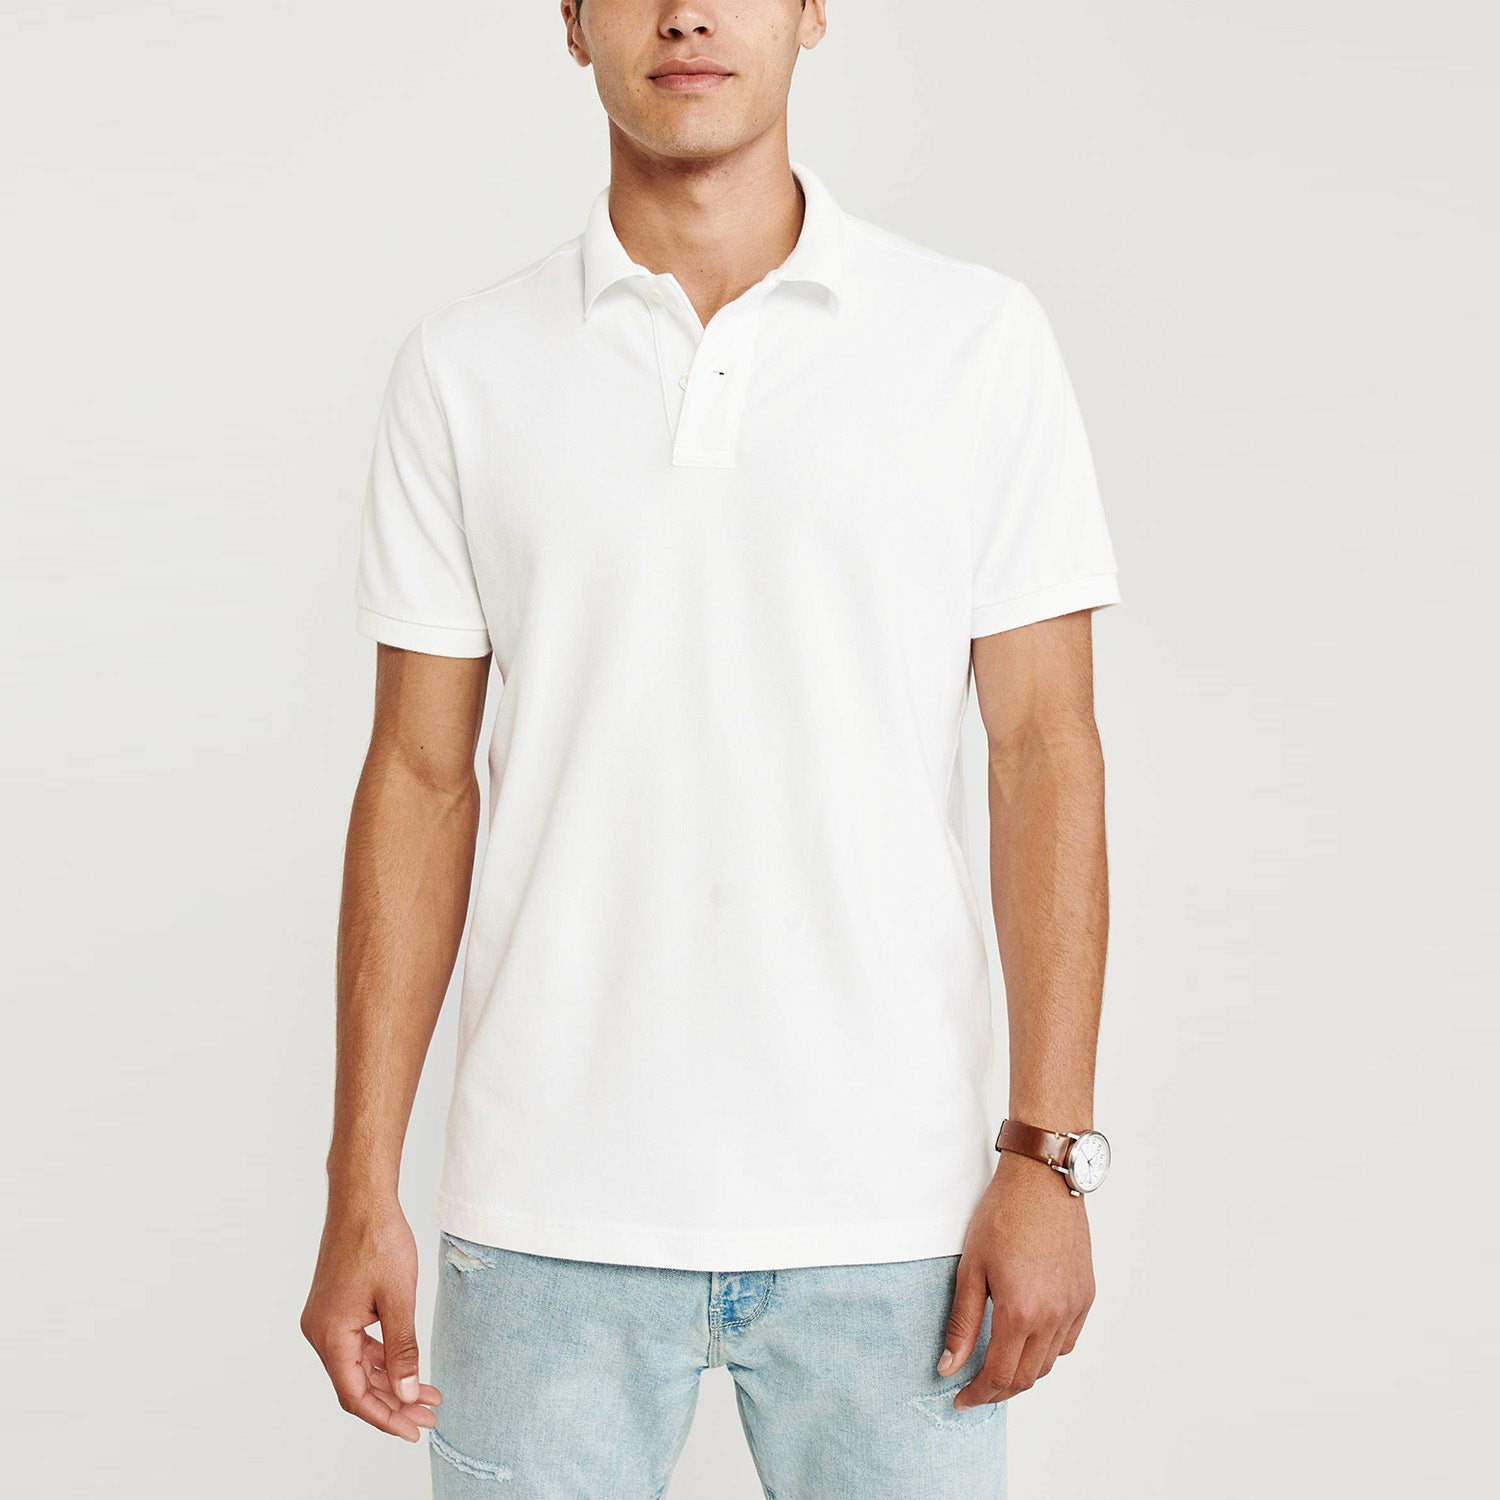 Falls Creek Stylish Summer Polo Shirt For Men-White-BE11549